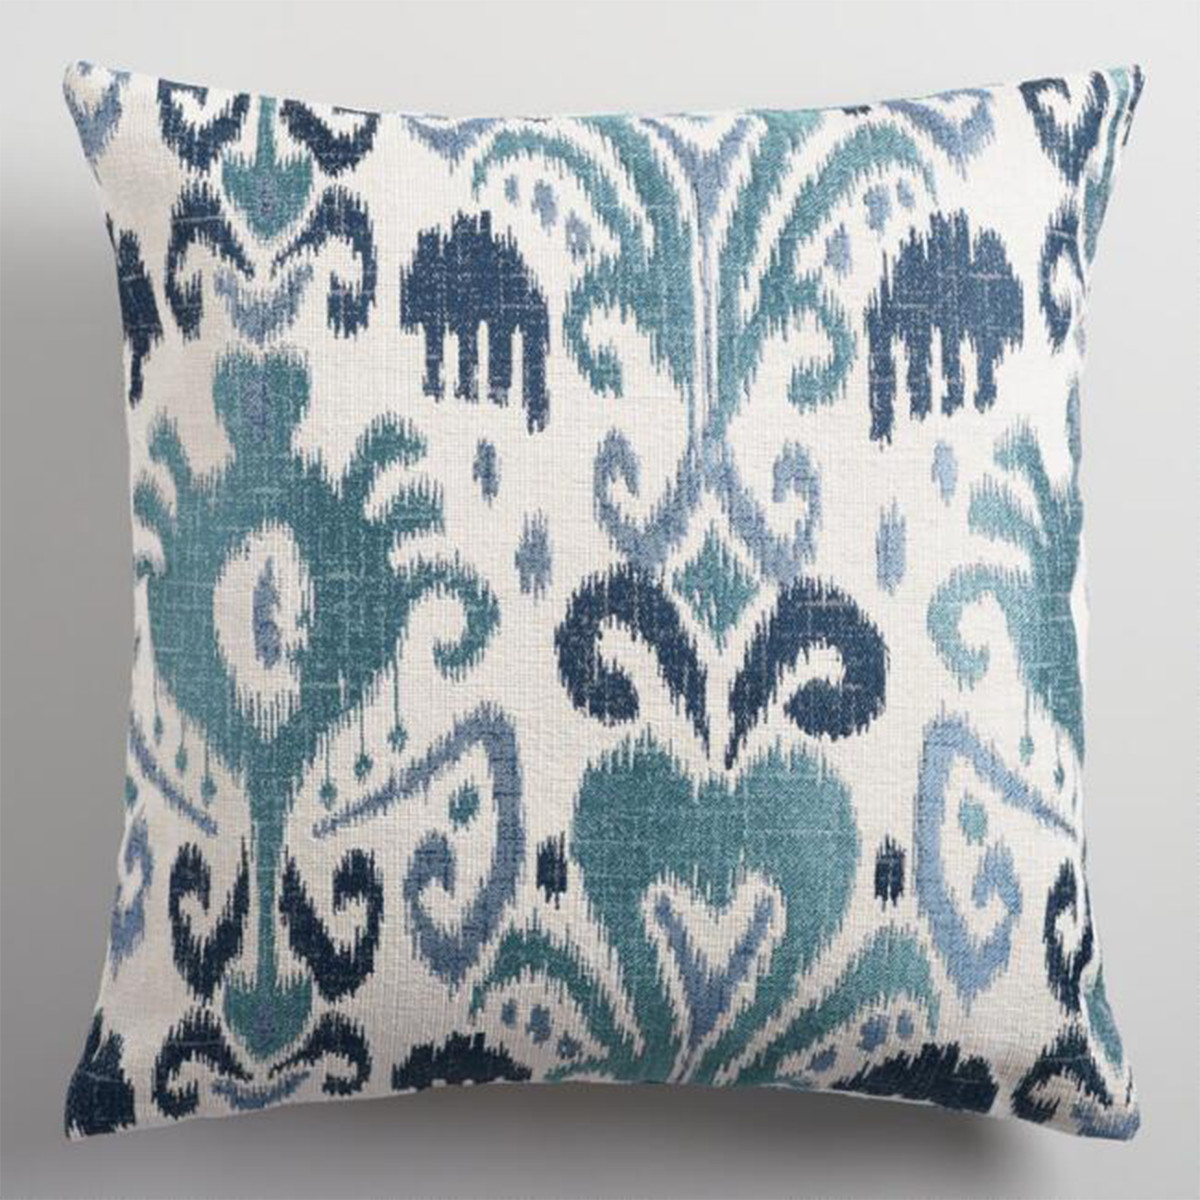 Featuring a trendy ikat design in soothing shades of blue, this throw pillow will be a standout addition to your home. photo